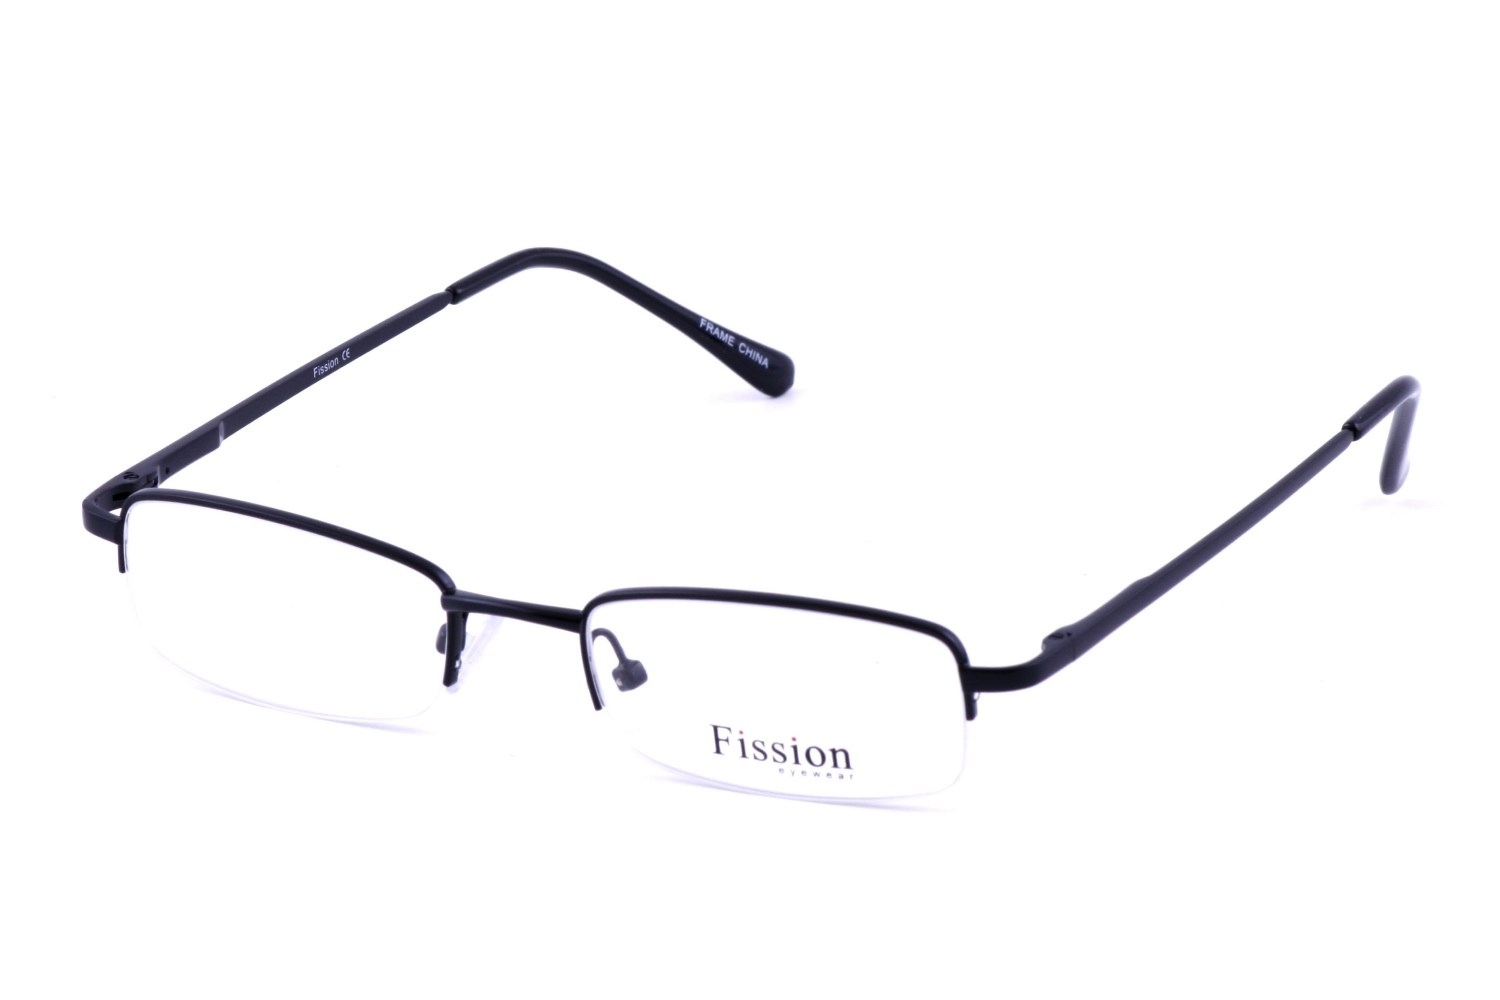 Fission 006 Prescription Eyeglasses Frames